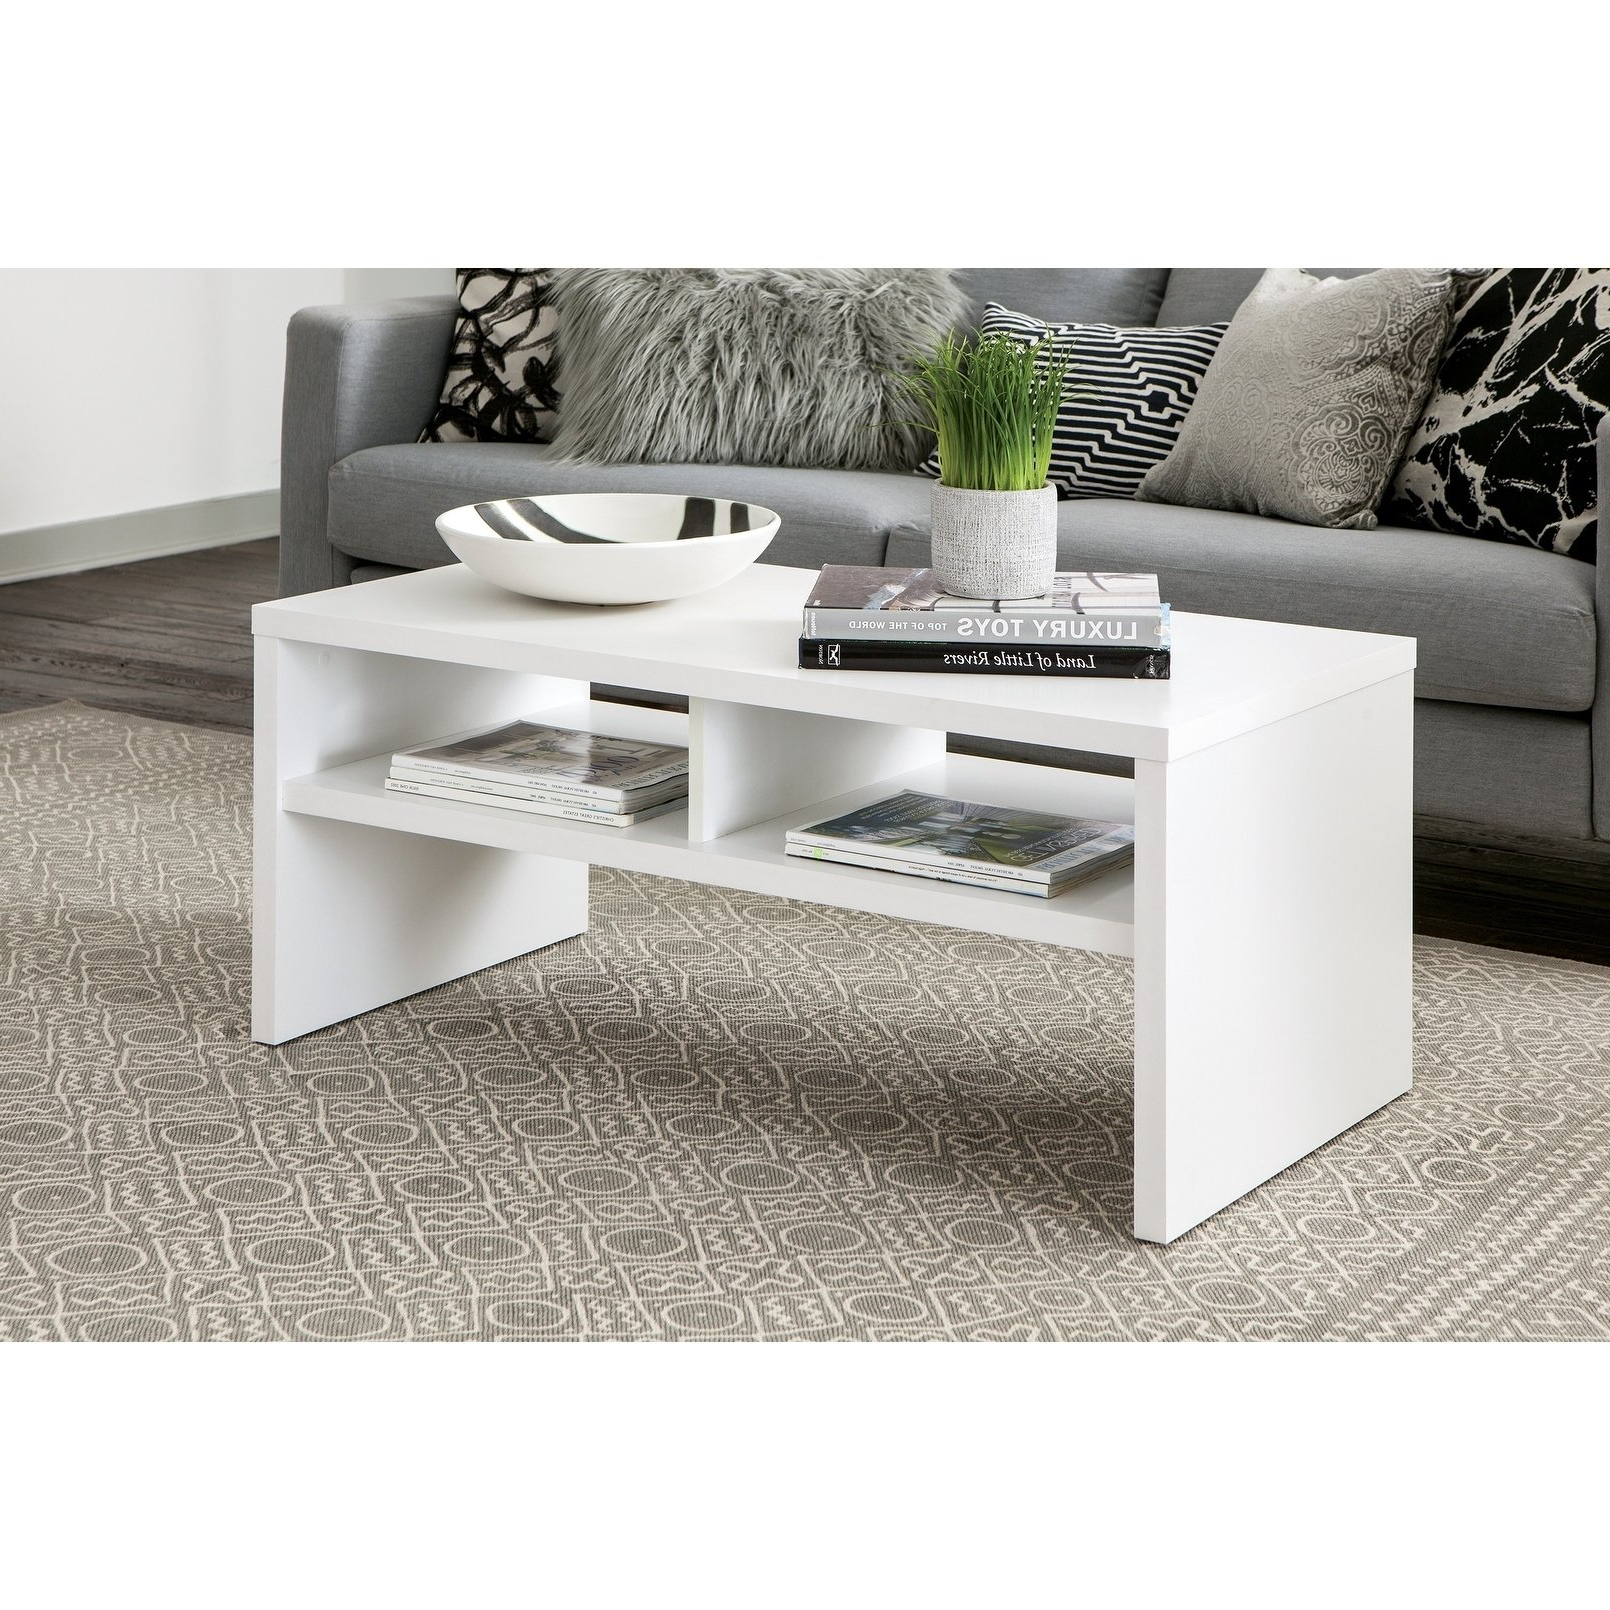 Modular Coffee Tables In Fashionable Shop Closetmaid Modular Coffee Table – Free Shipping Today (View 8 of 20)